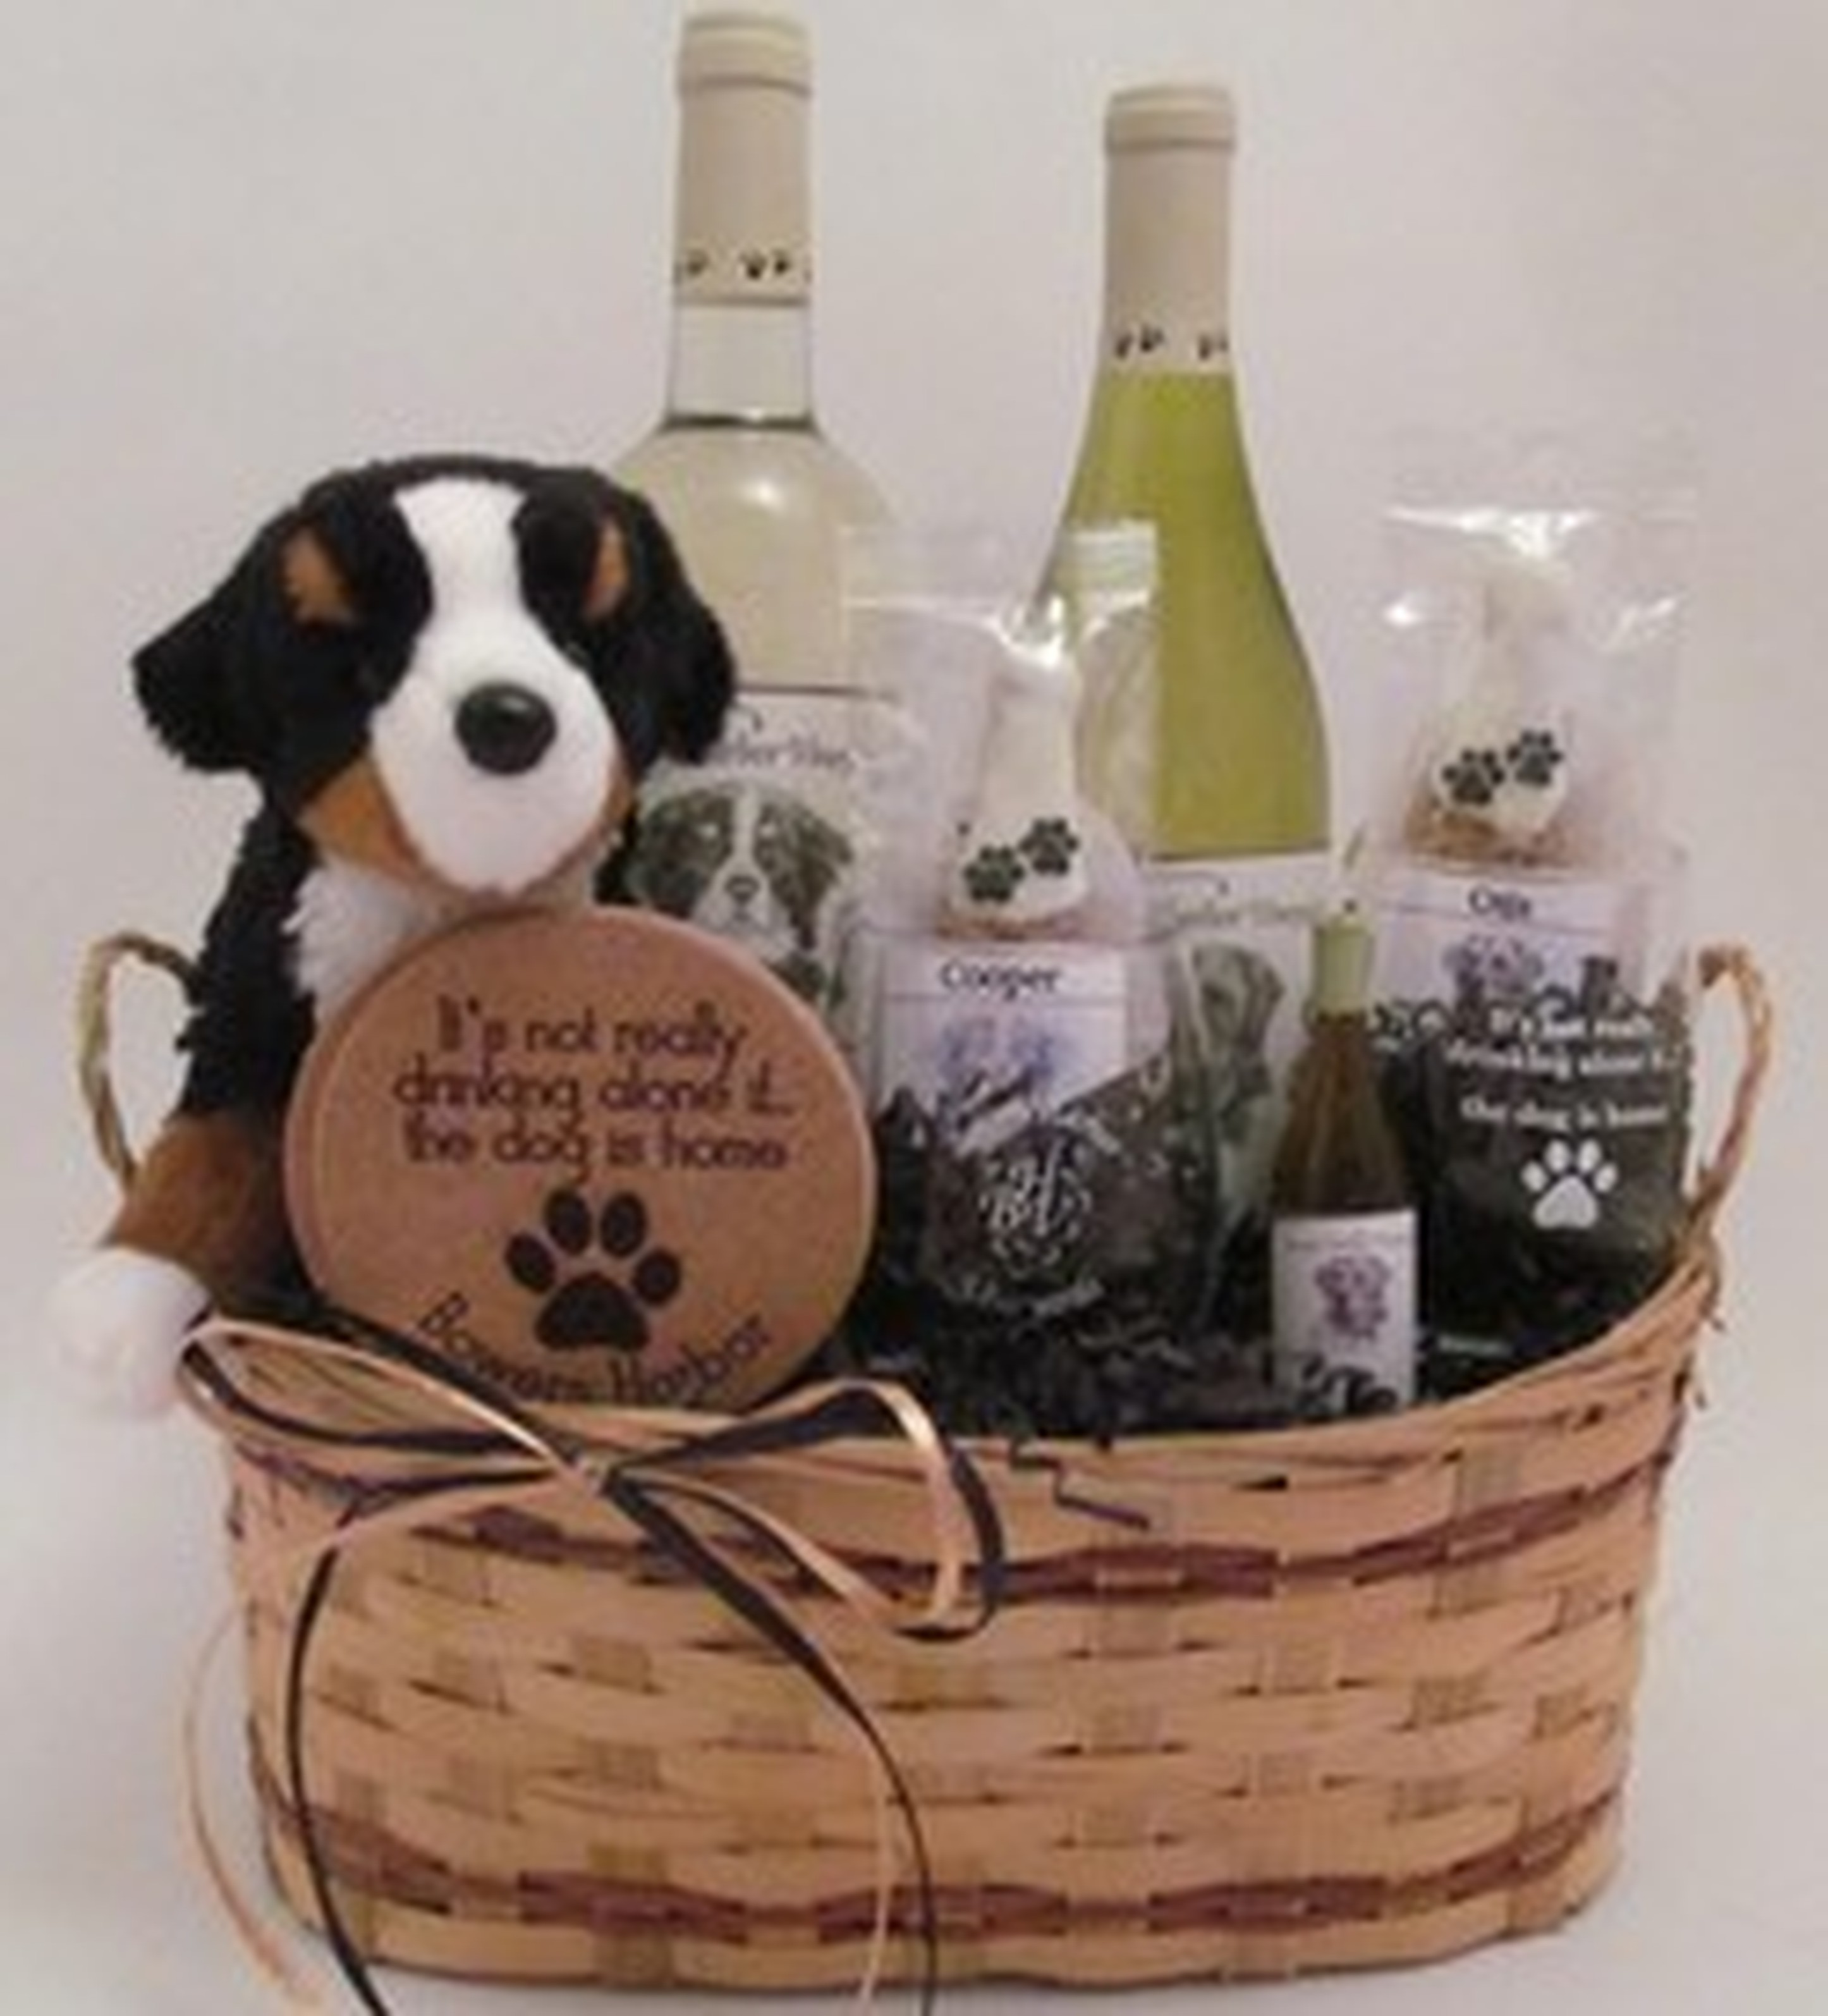 Bowers Harbor Vineyards Shop Gifts